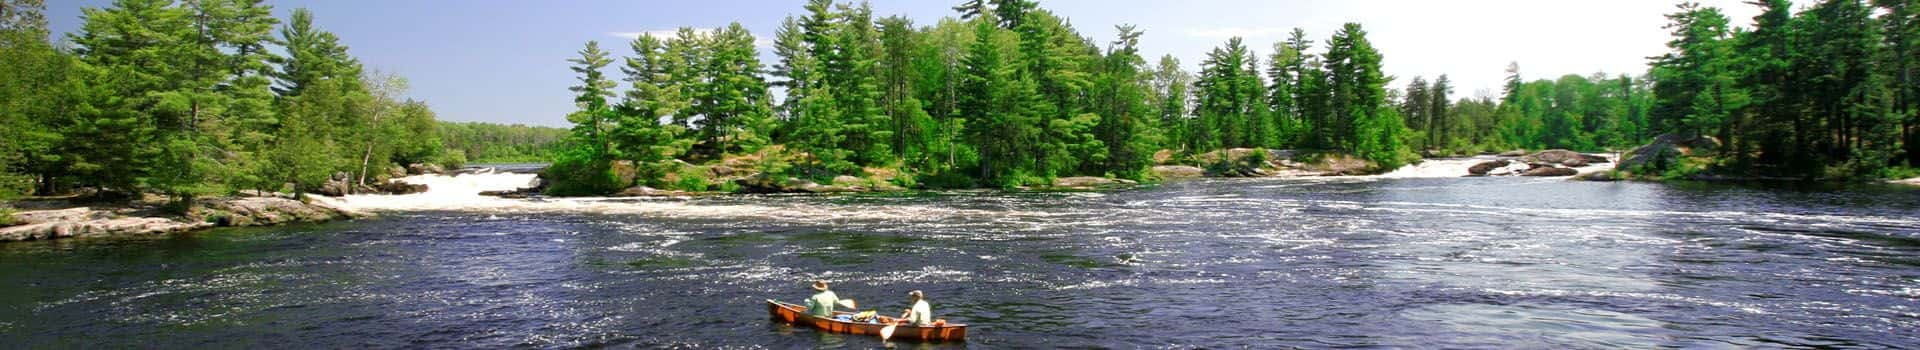 Boundary-Waters-Canoe-Guide-Services1